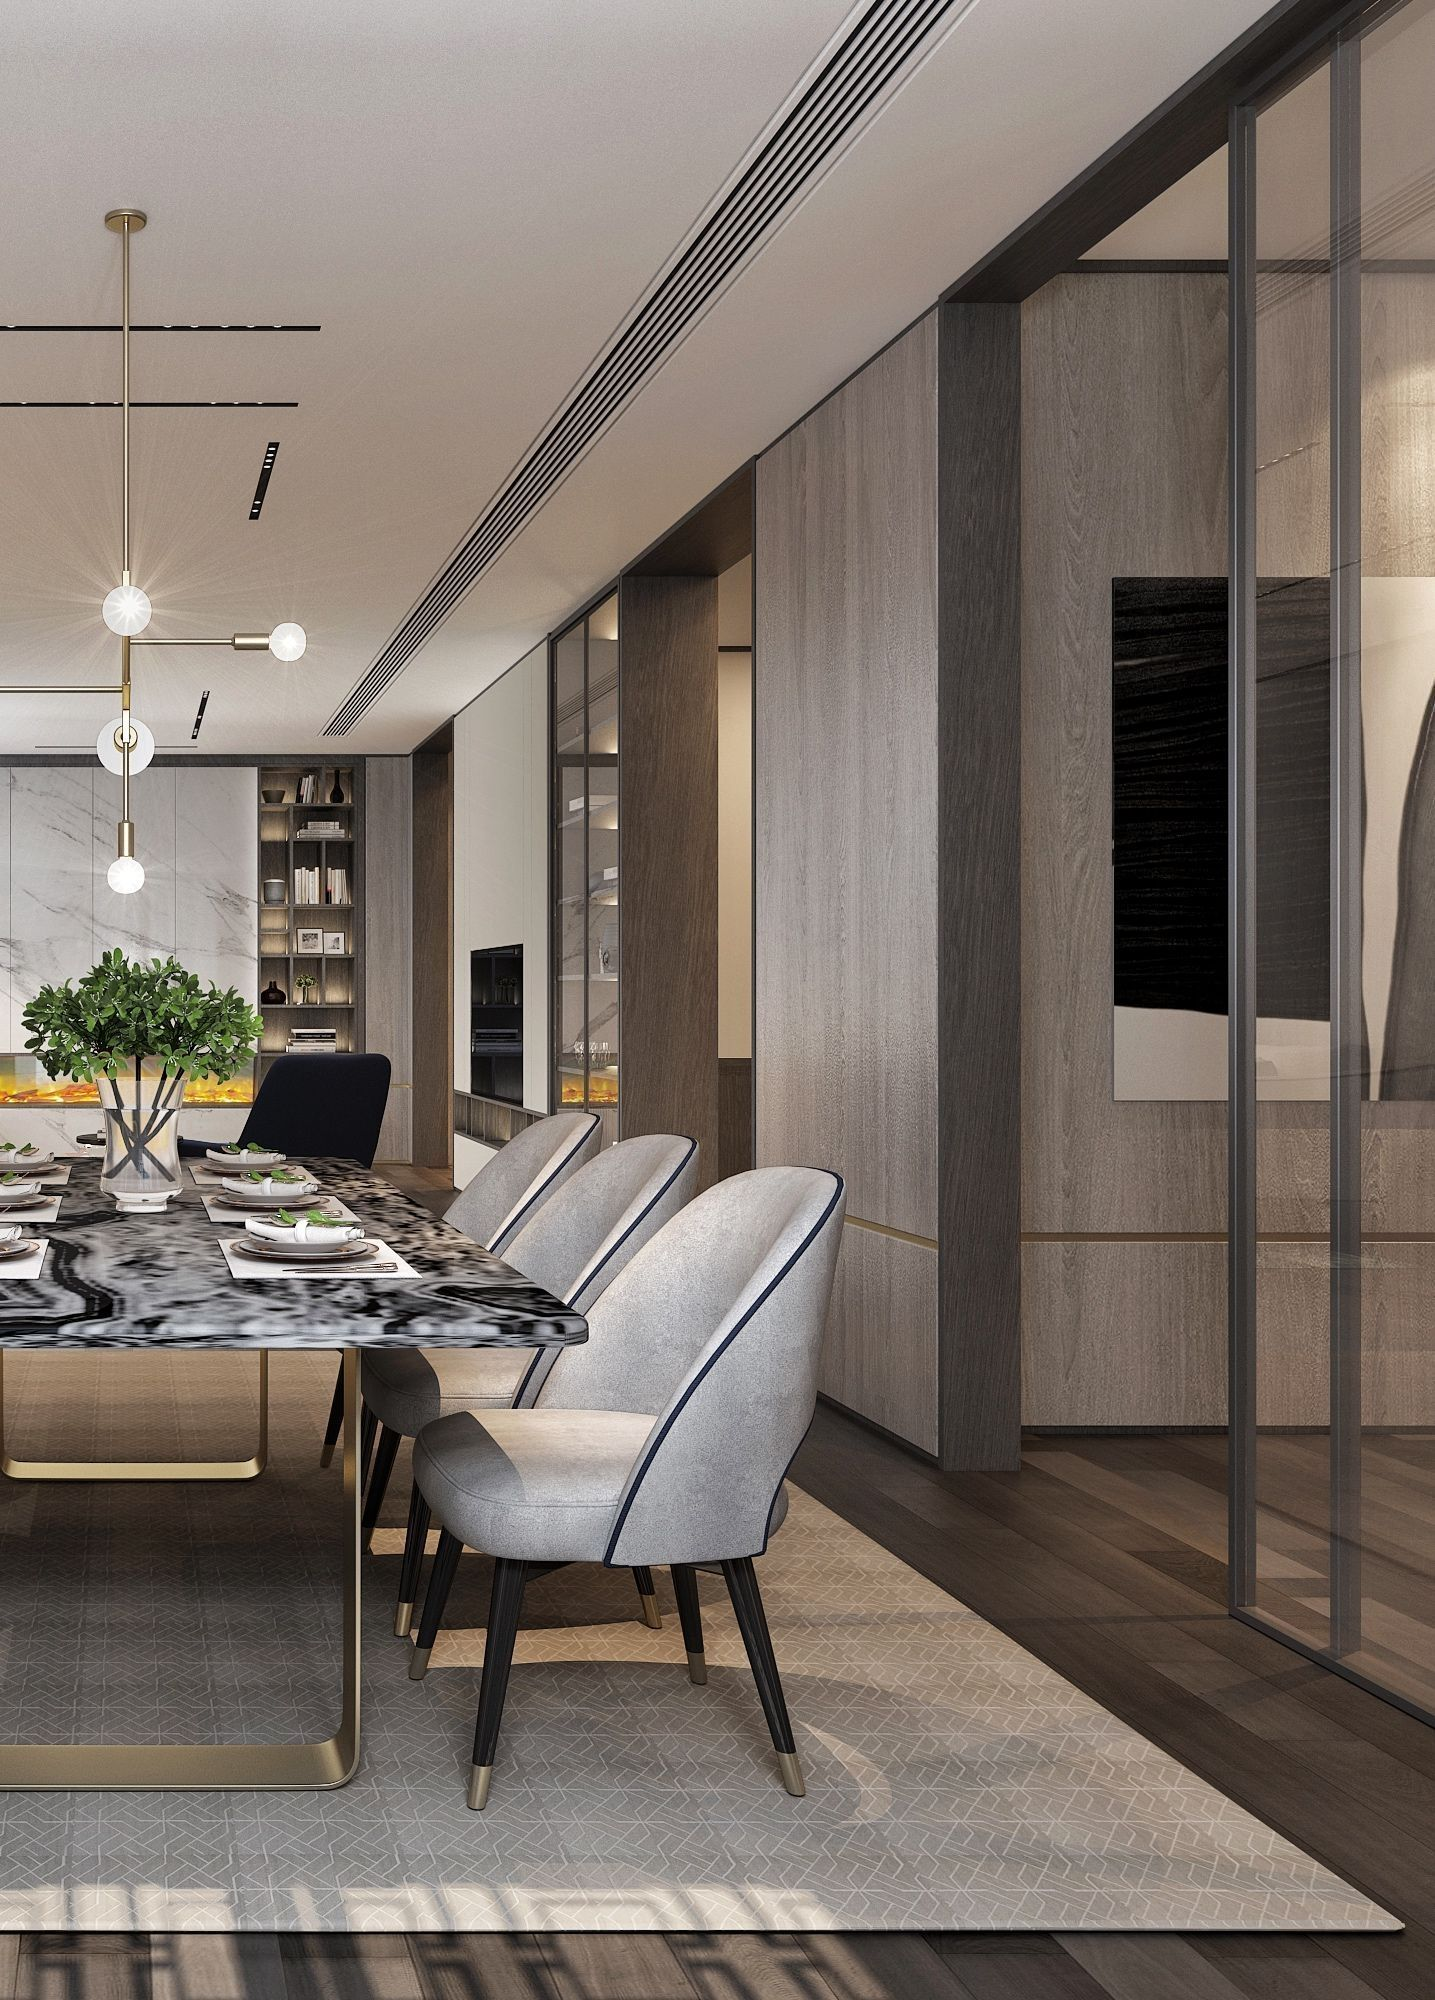 100 Clever And Stylish Living Room Storage Ideas Decormio Part 5 Dining Room Contemporary Luxury Dining Room Modern Dining Room